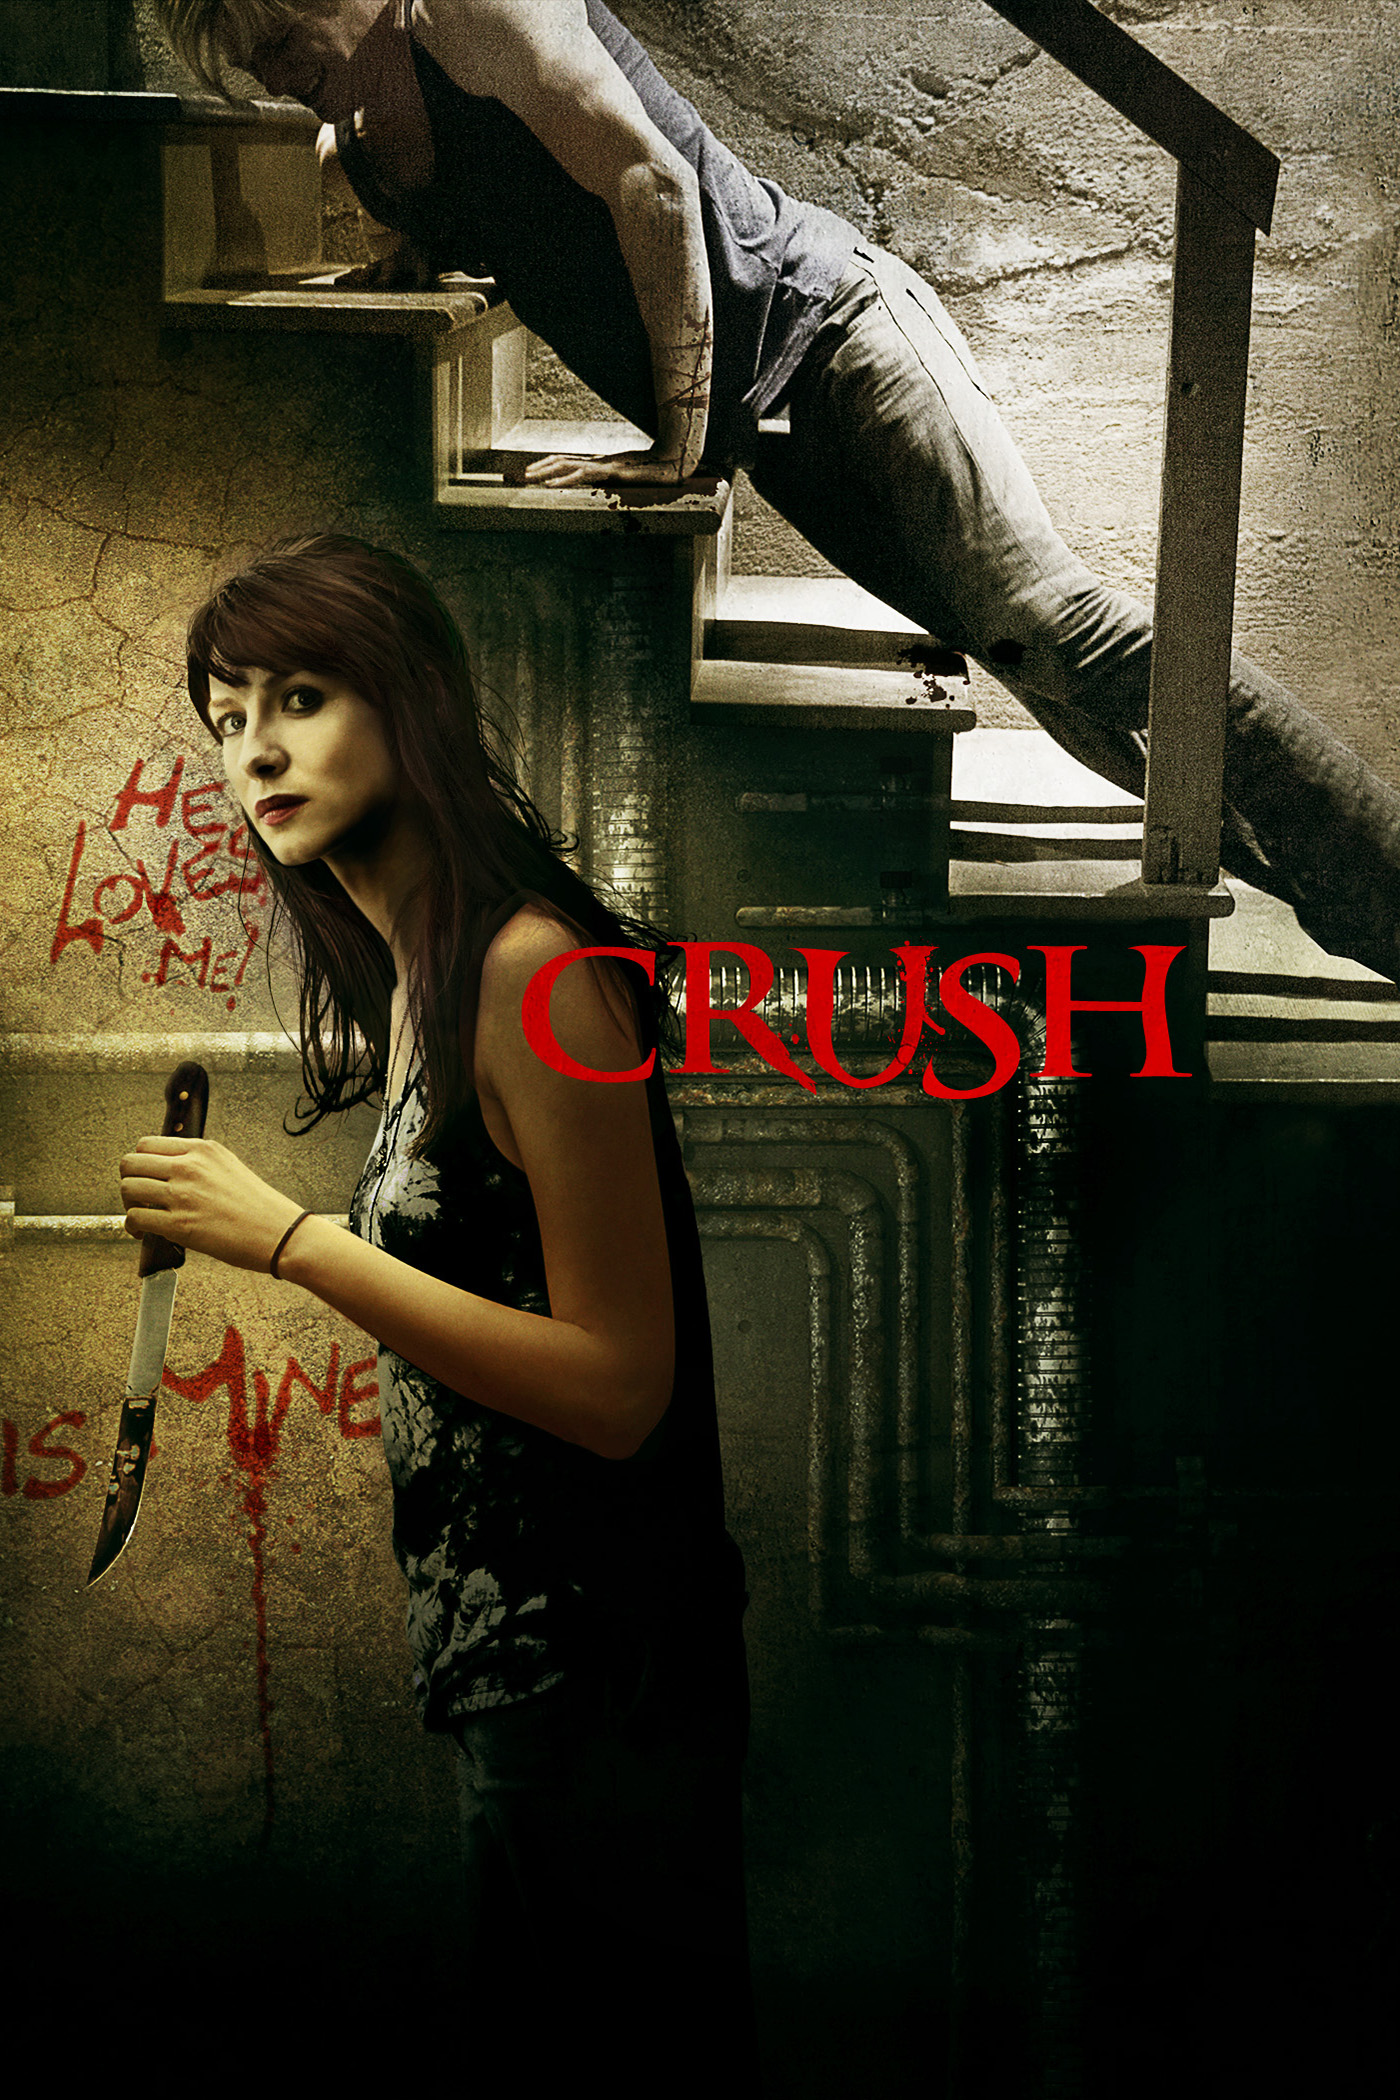 http://iconsoffright.com/wp-content/uploads/2013/04/crush-2013-poster-artwork-sarah-bolger-lucas-till-crystal-reed.jpg